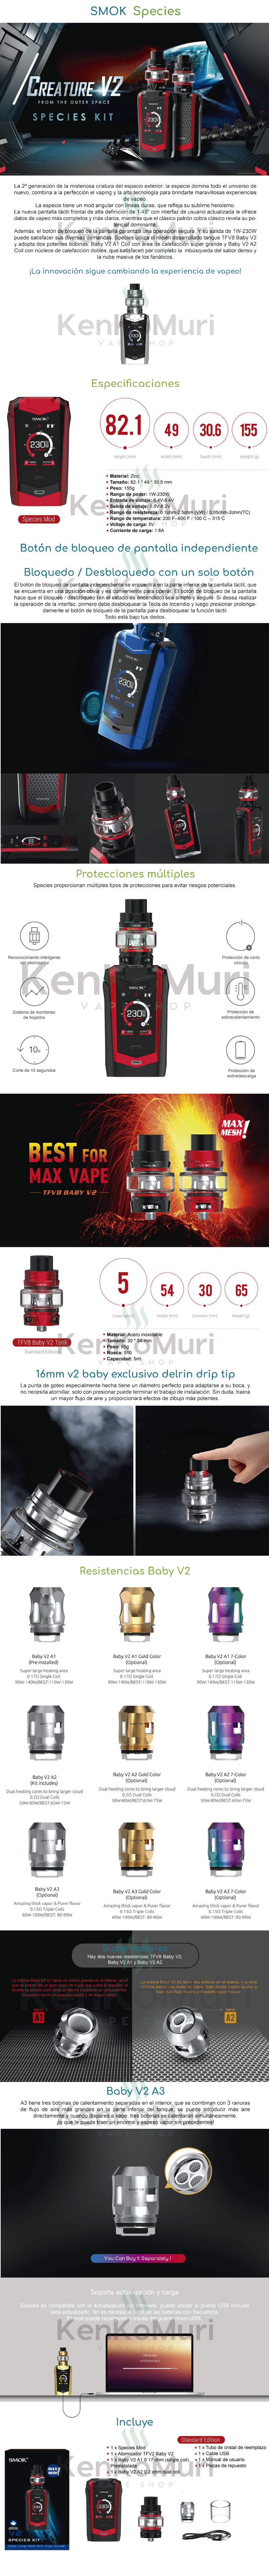 cigarroelectronico-vapeador-smok-species-mexico-kenkomuri